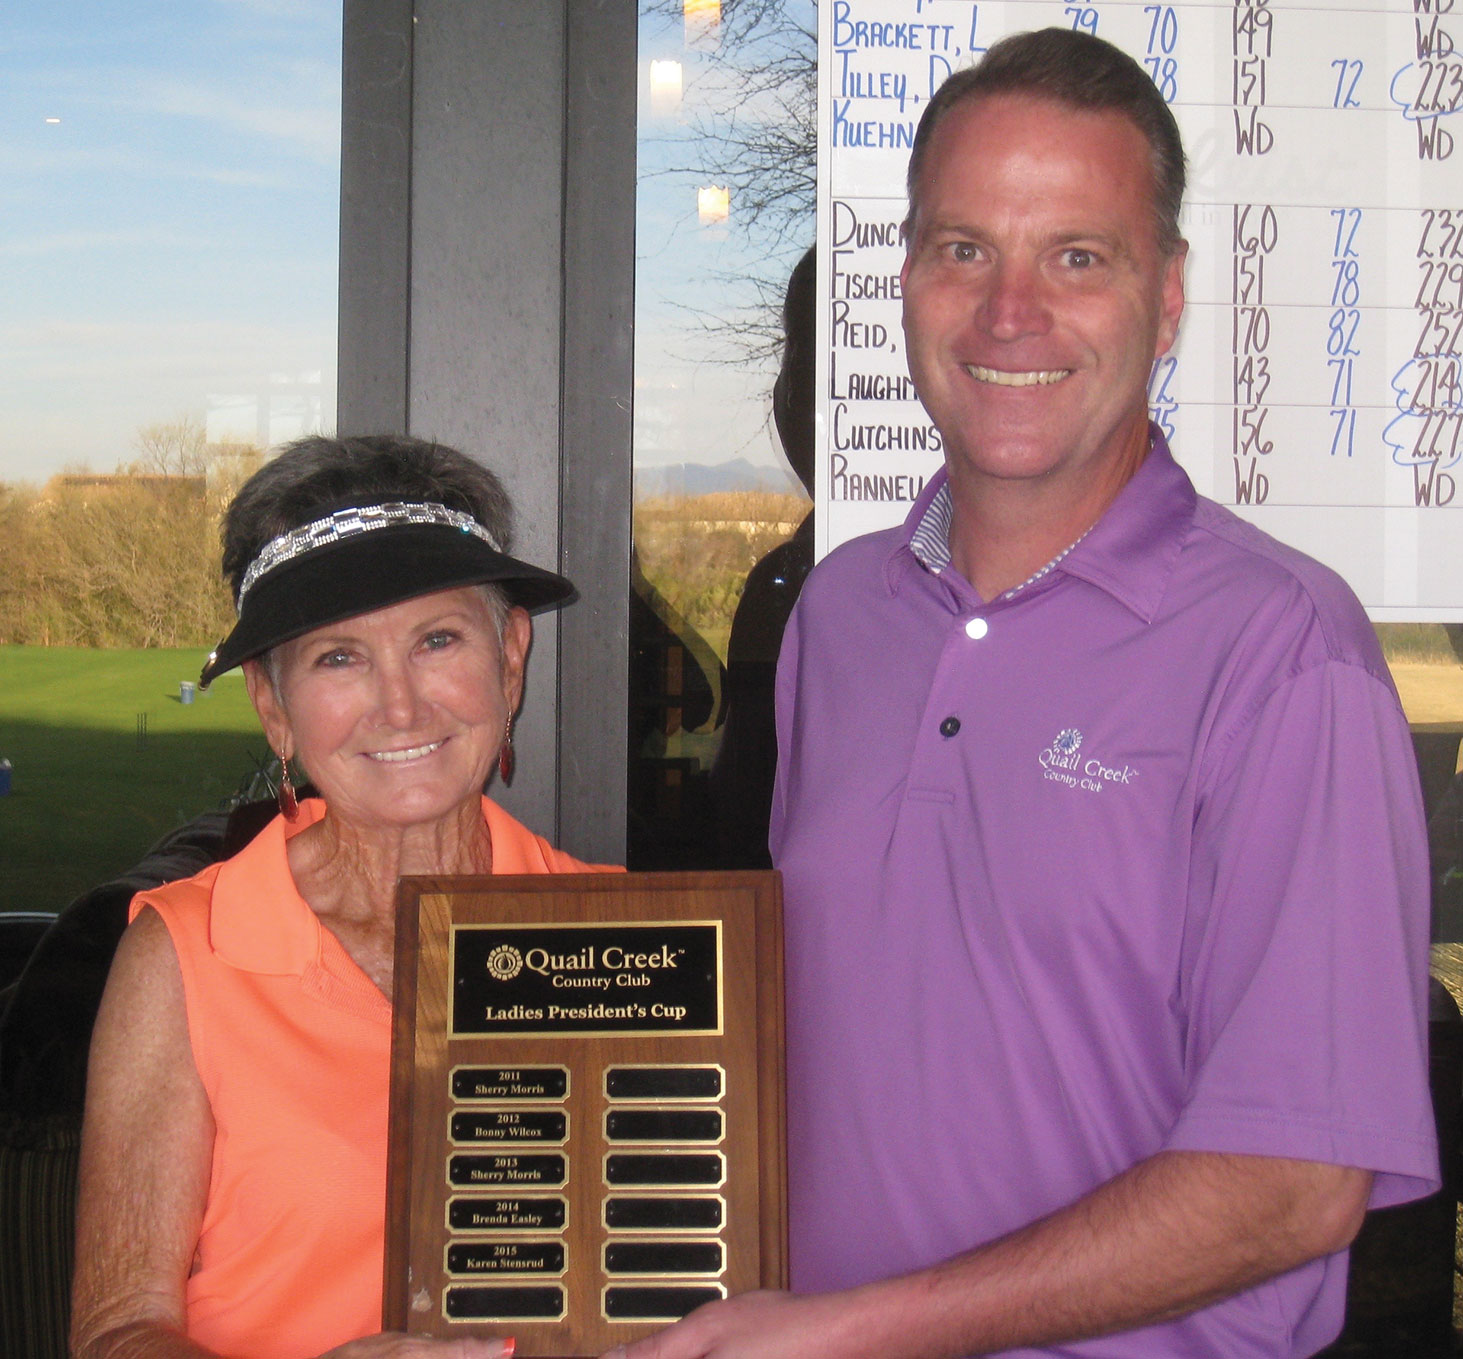 Congratulations to Chris England, the winner of the QCLGA's President's Cup. The 18 hole club contest is a three day low net flighted tournament. Chris is pictured here with Club Pro Joel Jaress claiming her prize on March 3.